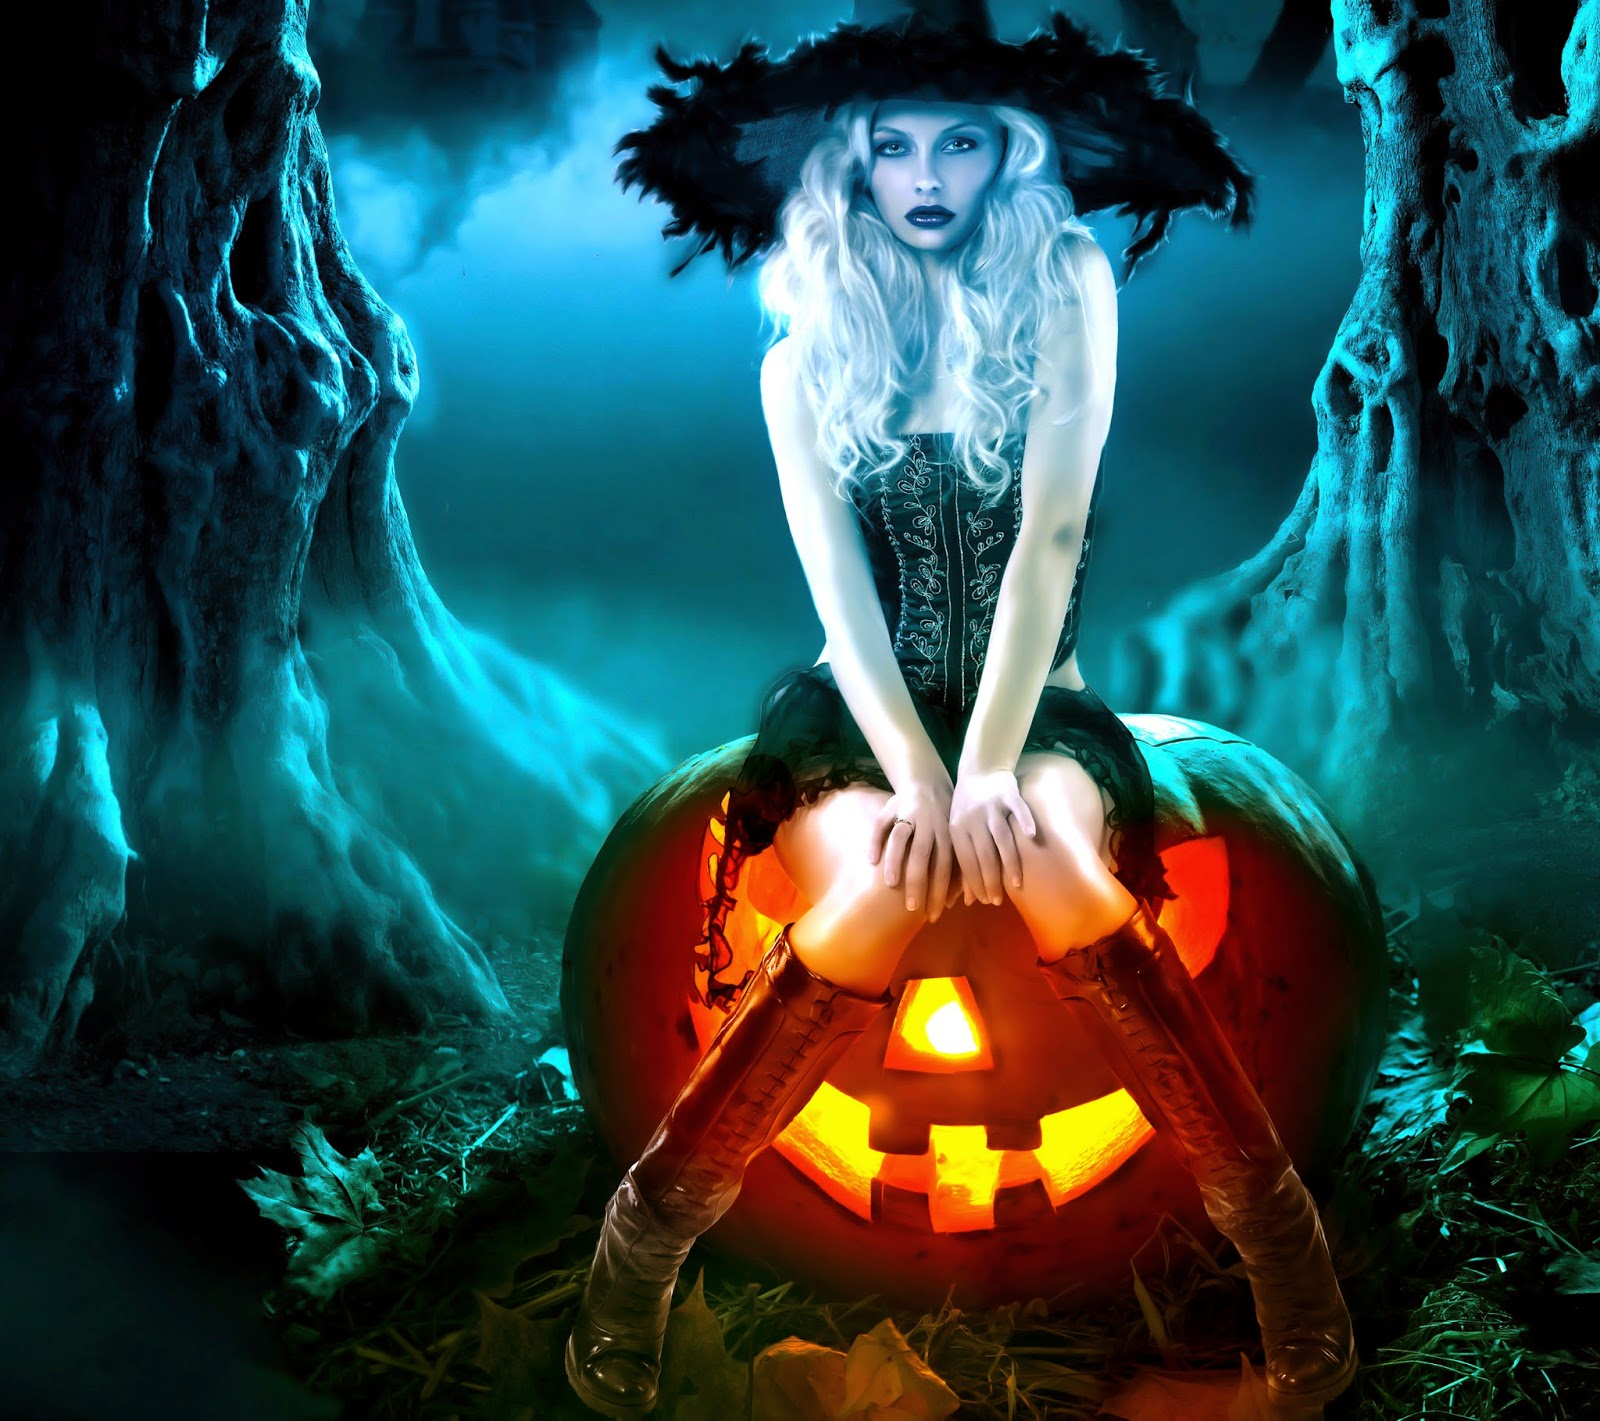 Sexy-hot-halloween-girl-on-pumpkin-image-2500x2220.jpg